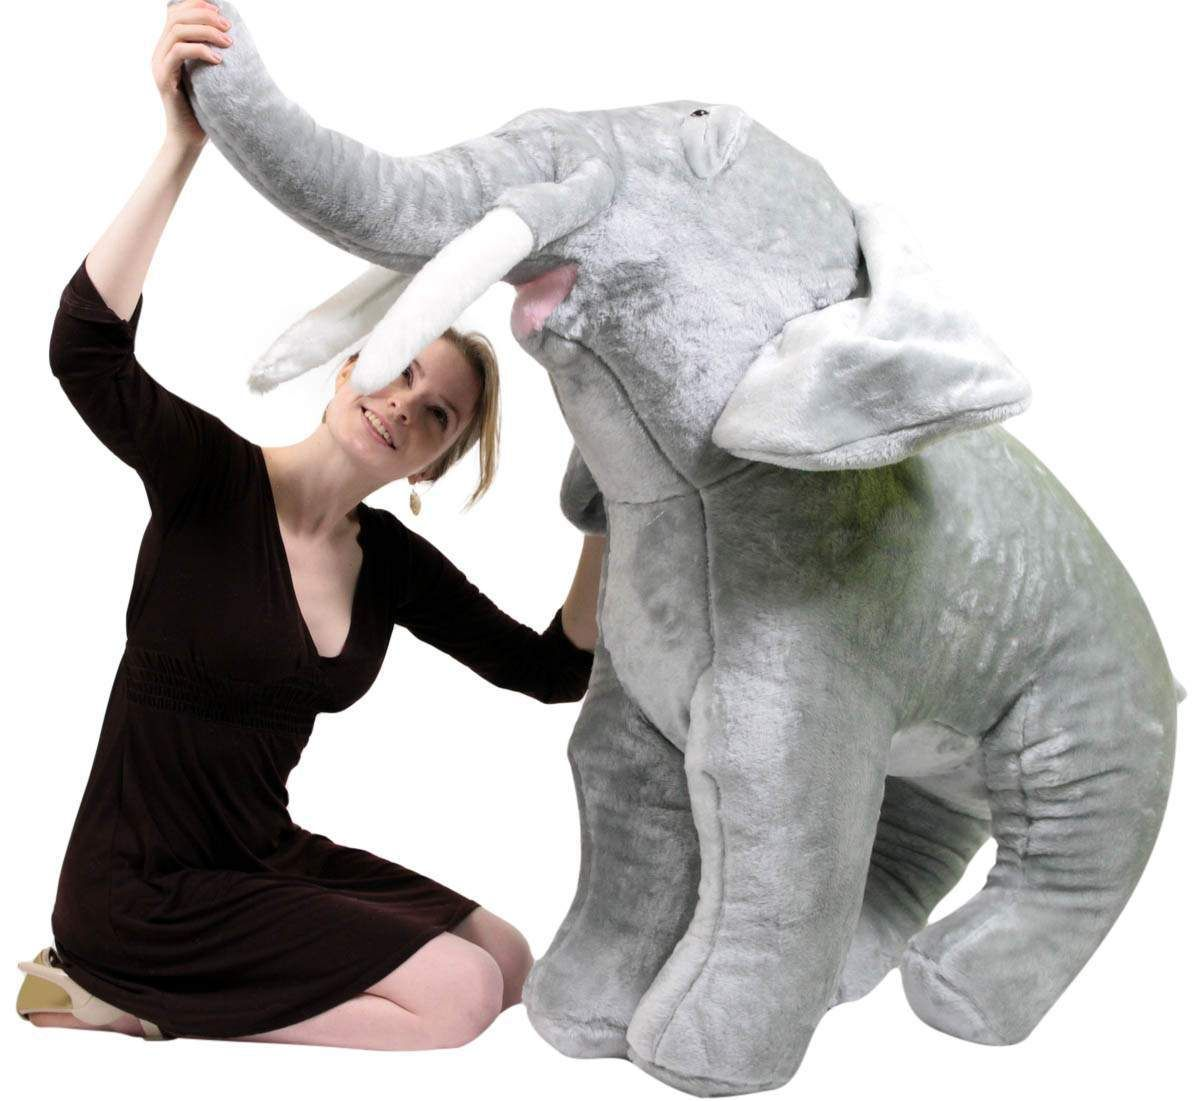 Big Plush Personalized Giant Teddy Bears and Custom Large Stuffed Animals - American Made Giant Stuffed Elephant 48 Inches Big Plush Animal Made in the USA America, $242.20 (https://www.bigplush.com/american-made-giant-stuffed-elephant-48-inches-big-plush-animal-made-in-the-usa-america/)